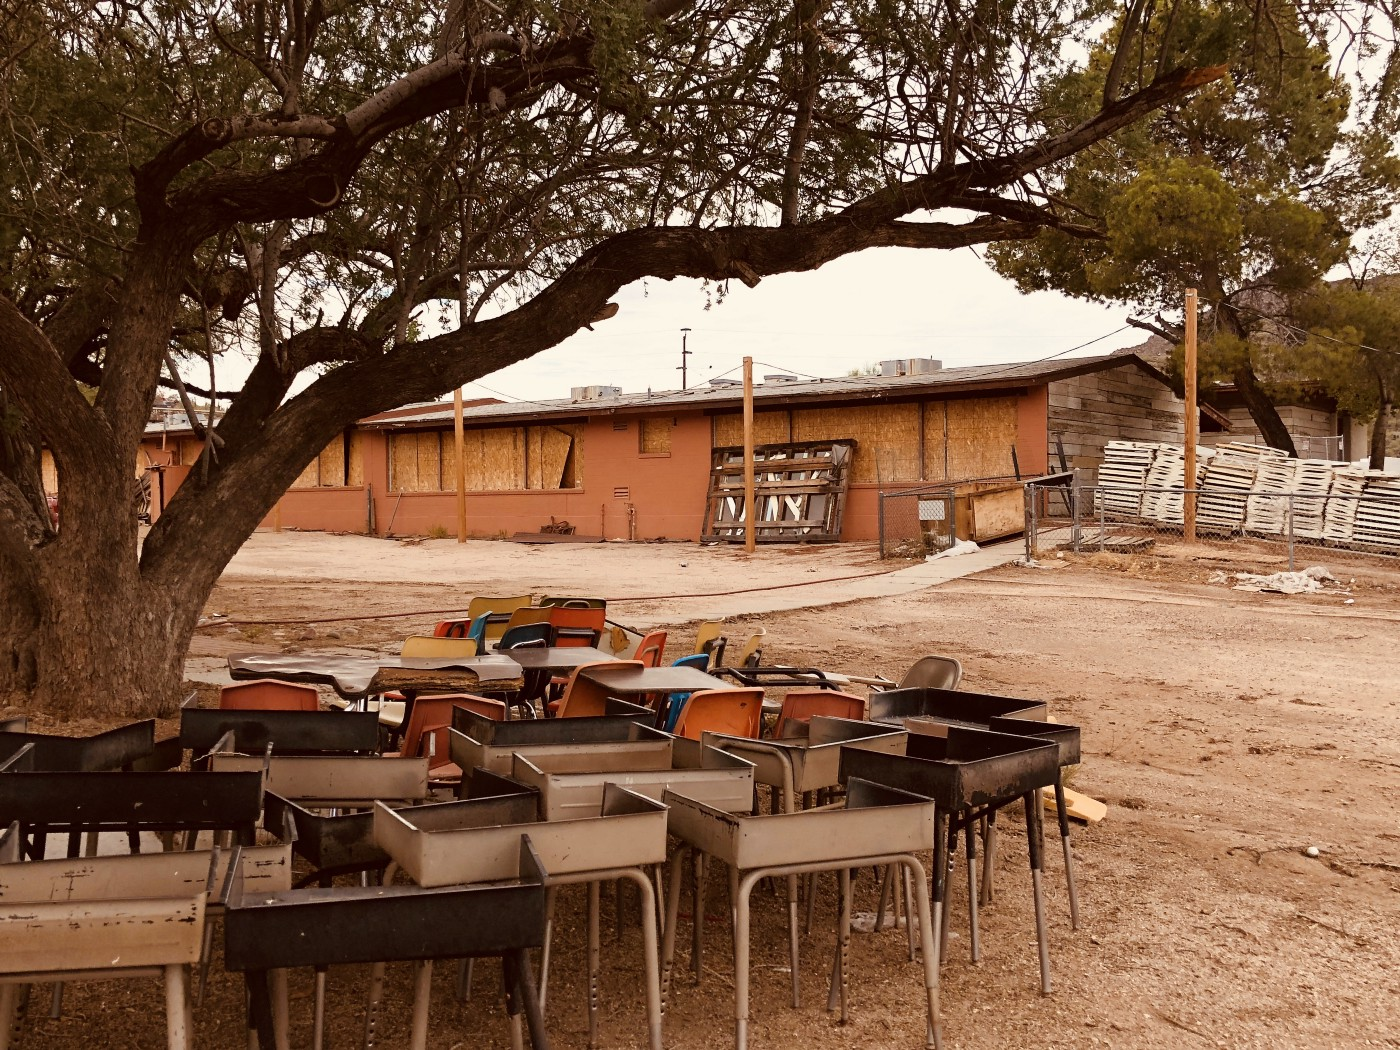 Photo of author's childhood elementary school, now boarded up with an abandoned circle of desks discarded beneath a tree